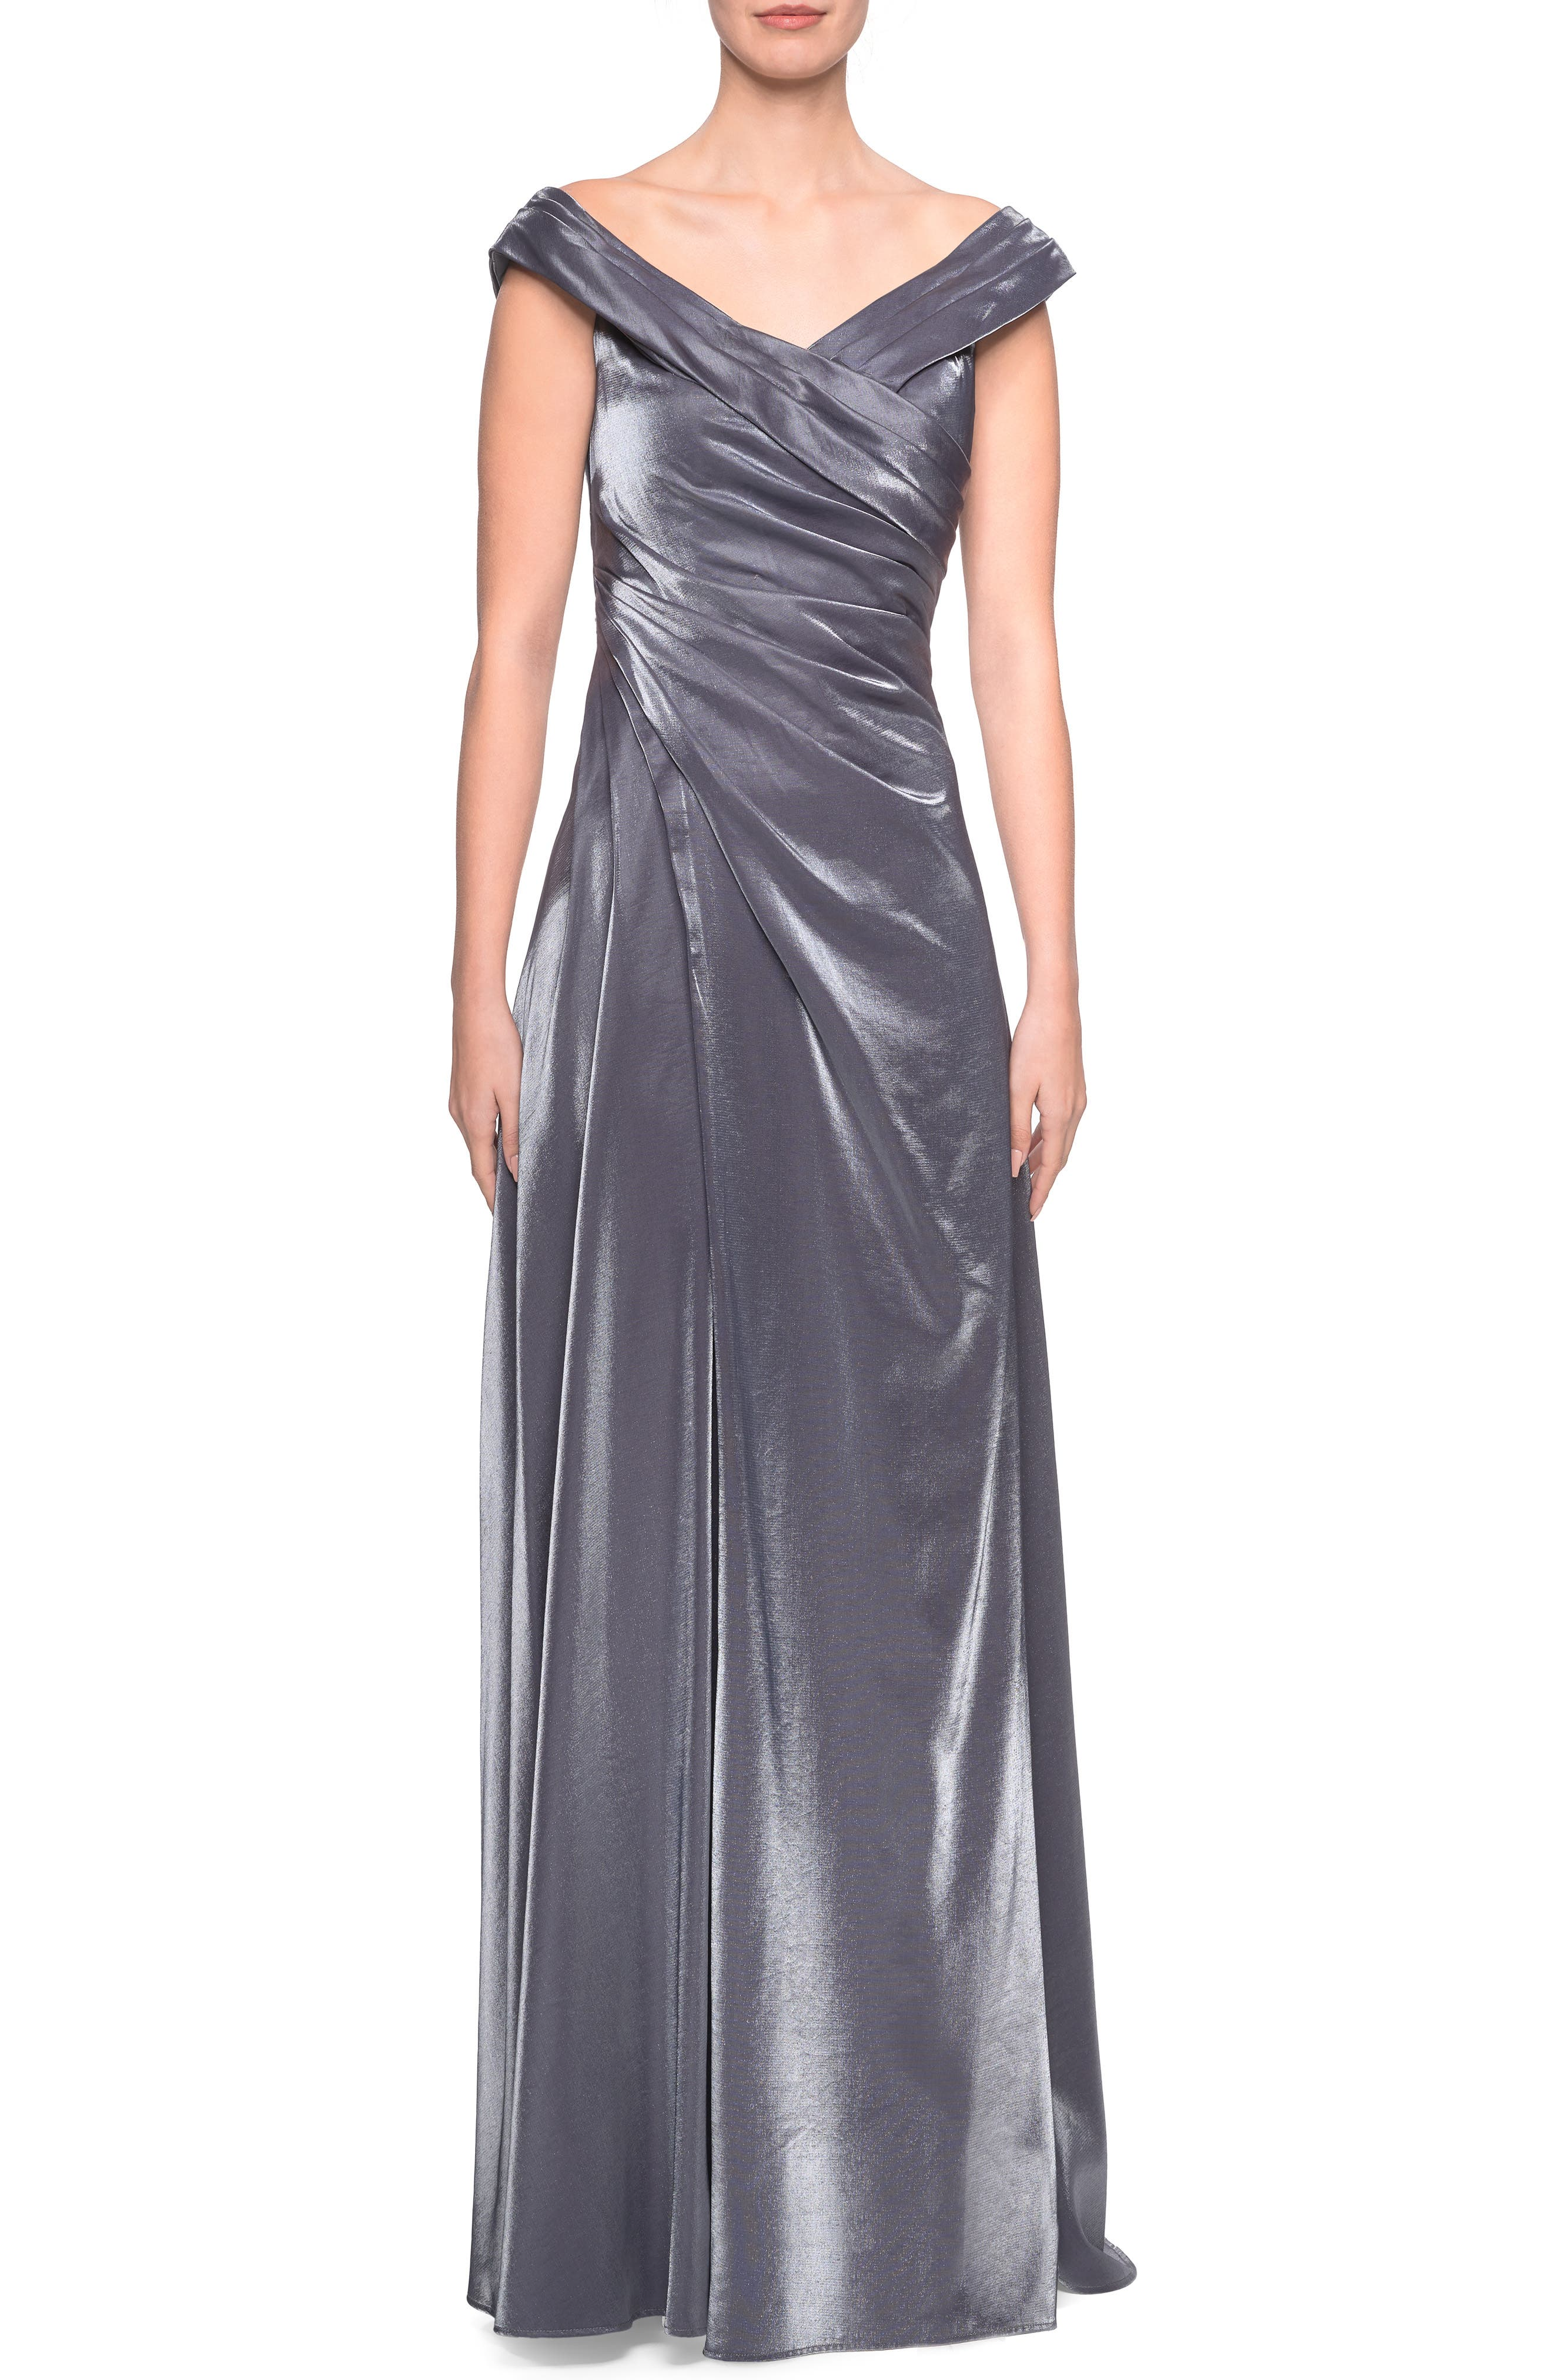 La Femme Ruched Satin Evening Dress, Grey